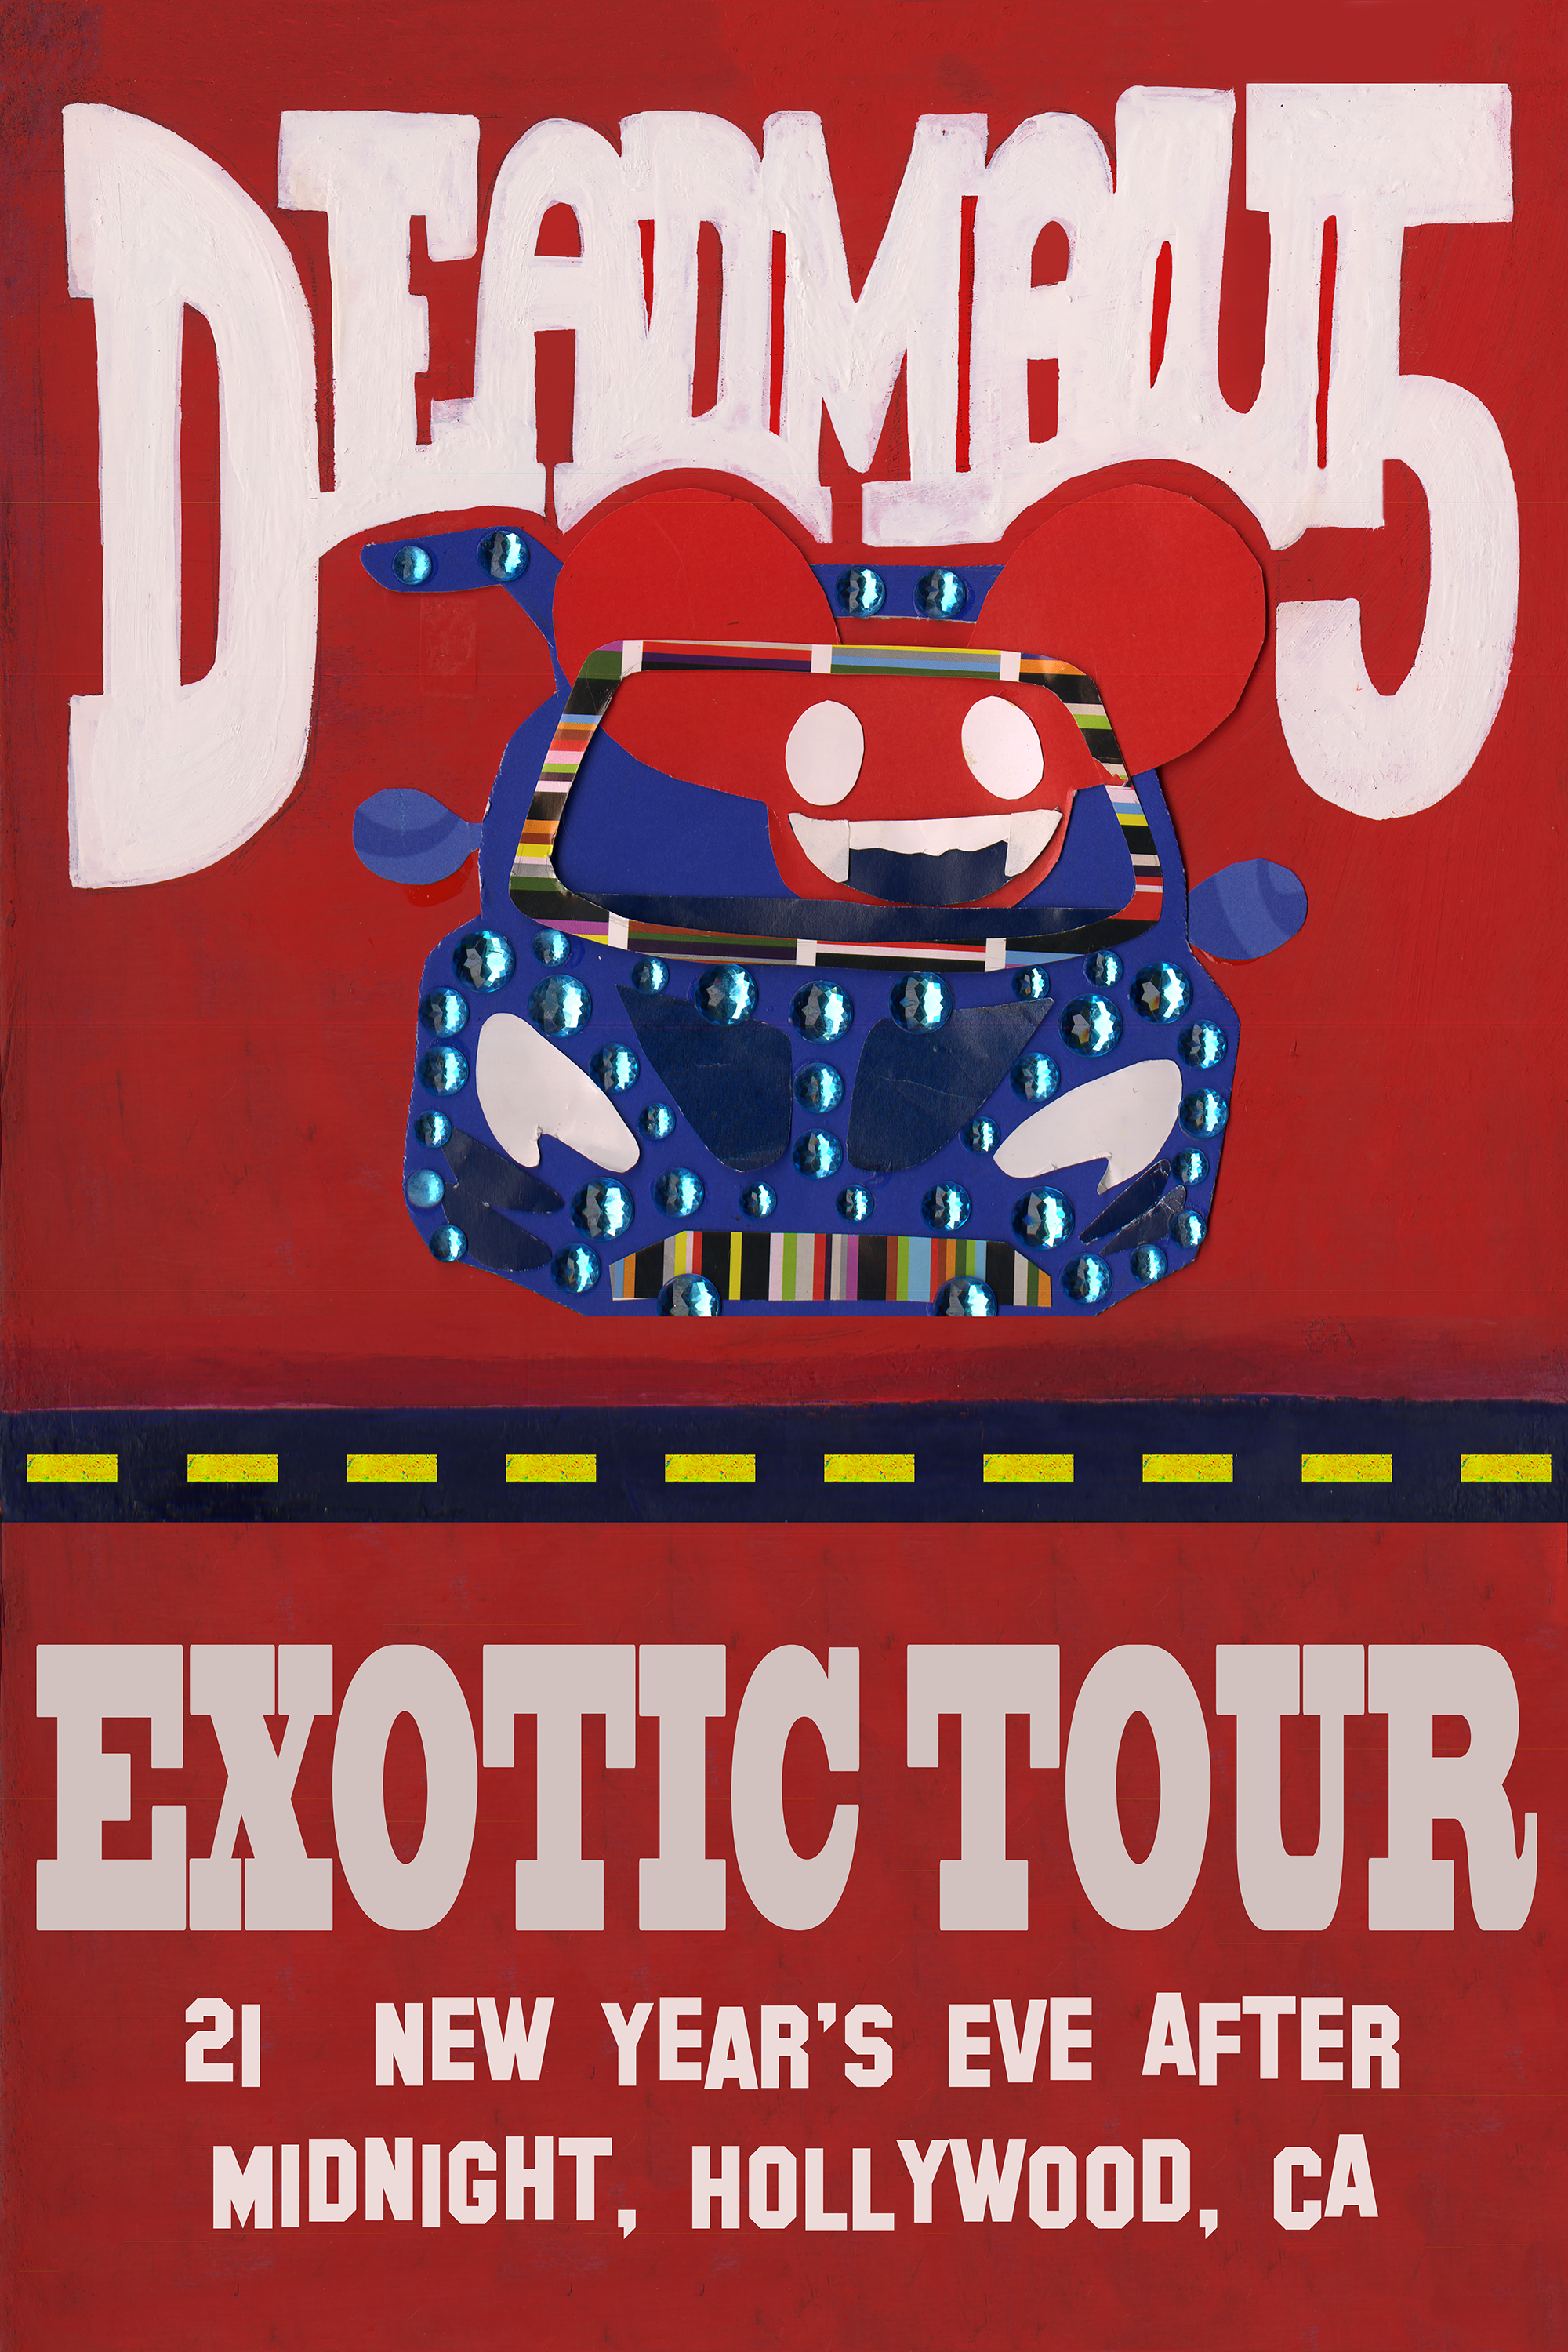 DeadMau5 Exotic Tour Poster